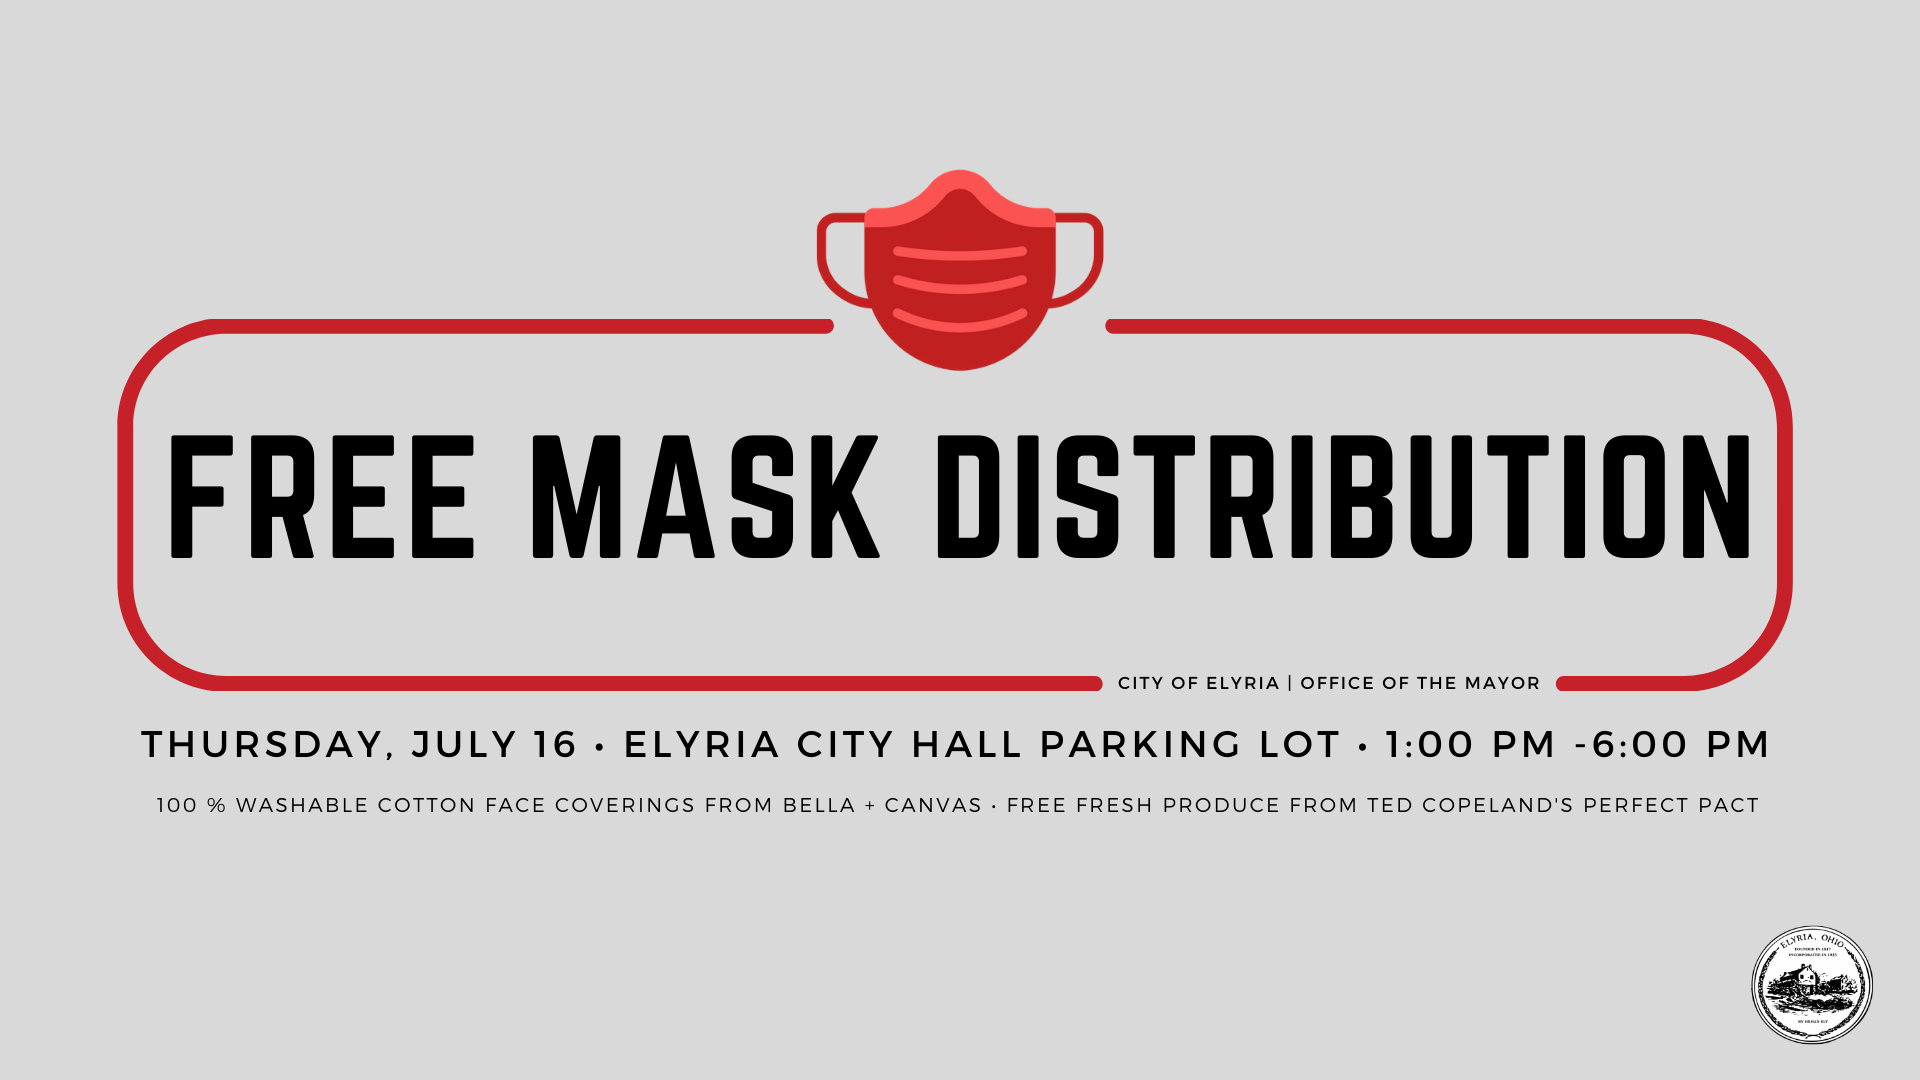 Event Flyer for Free Mask Distribution from the Office of the Mayor